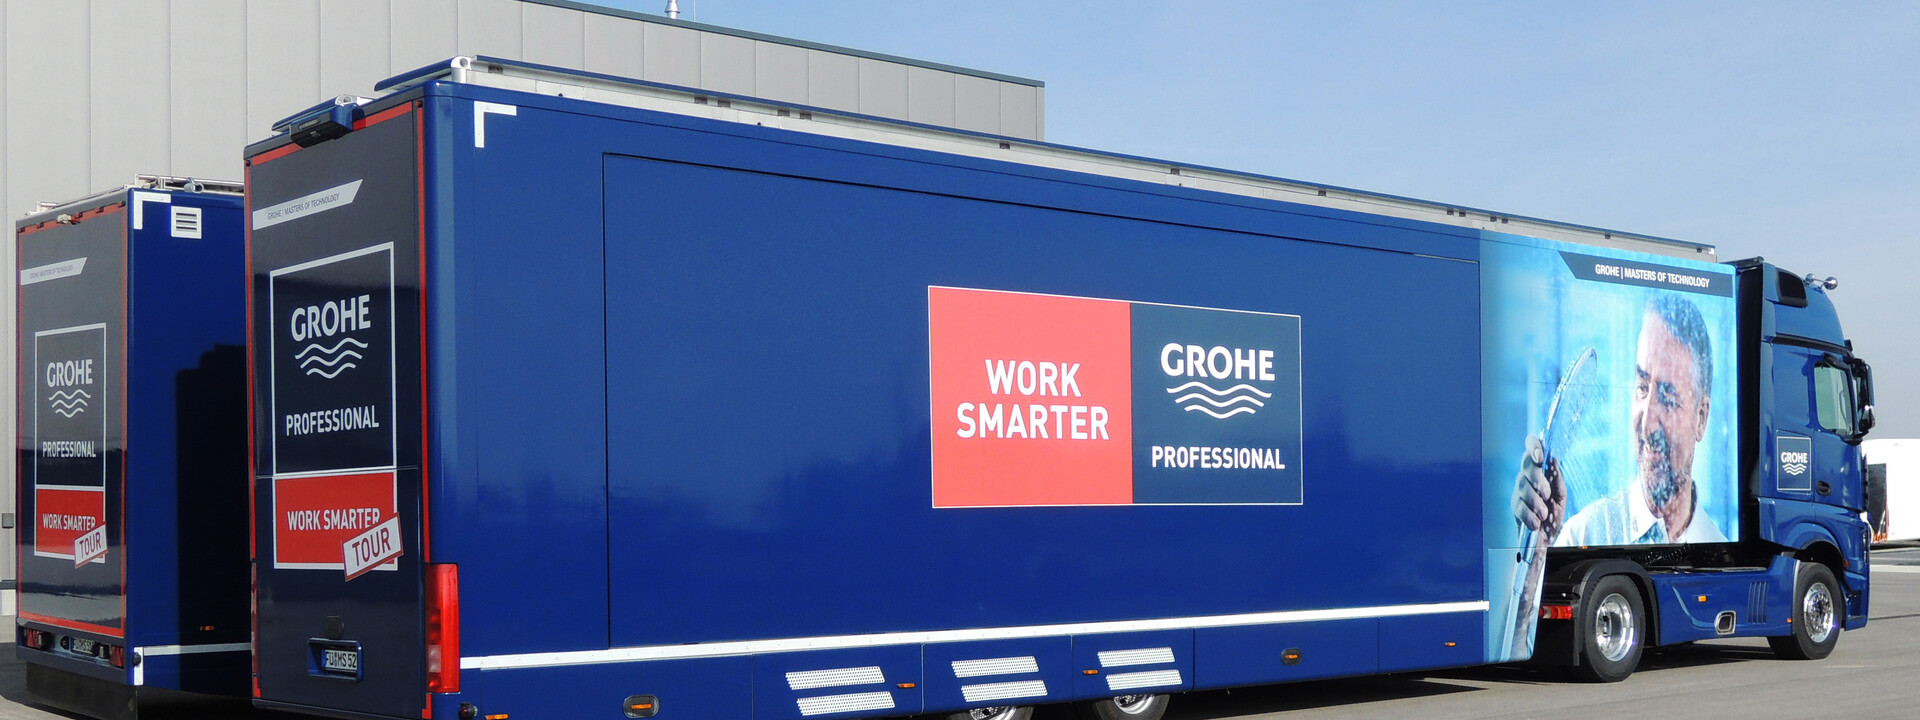 grohe-promotiontruck-2.jpg